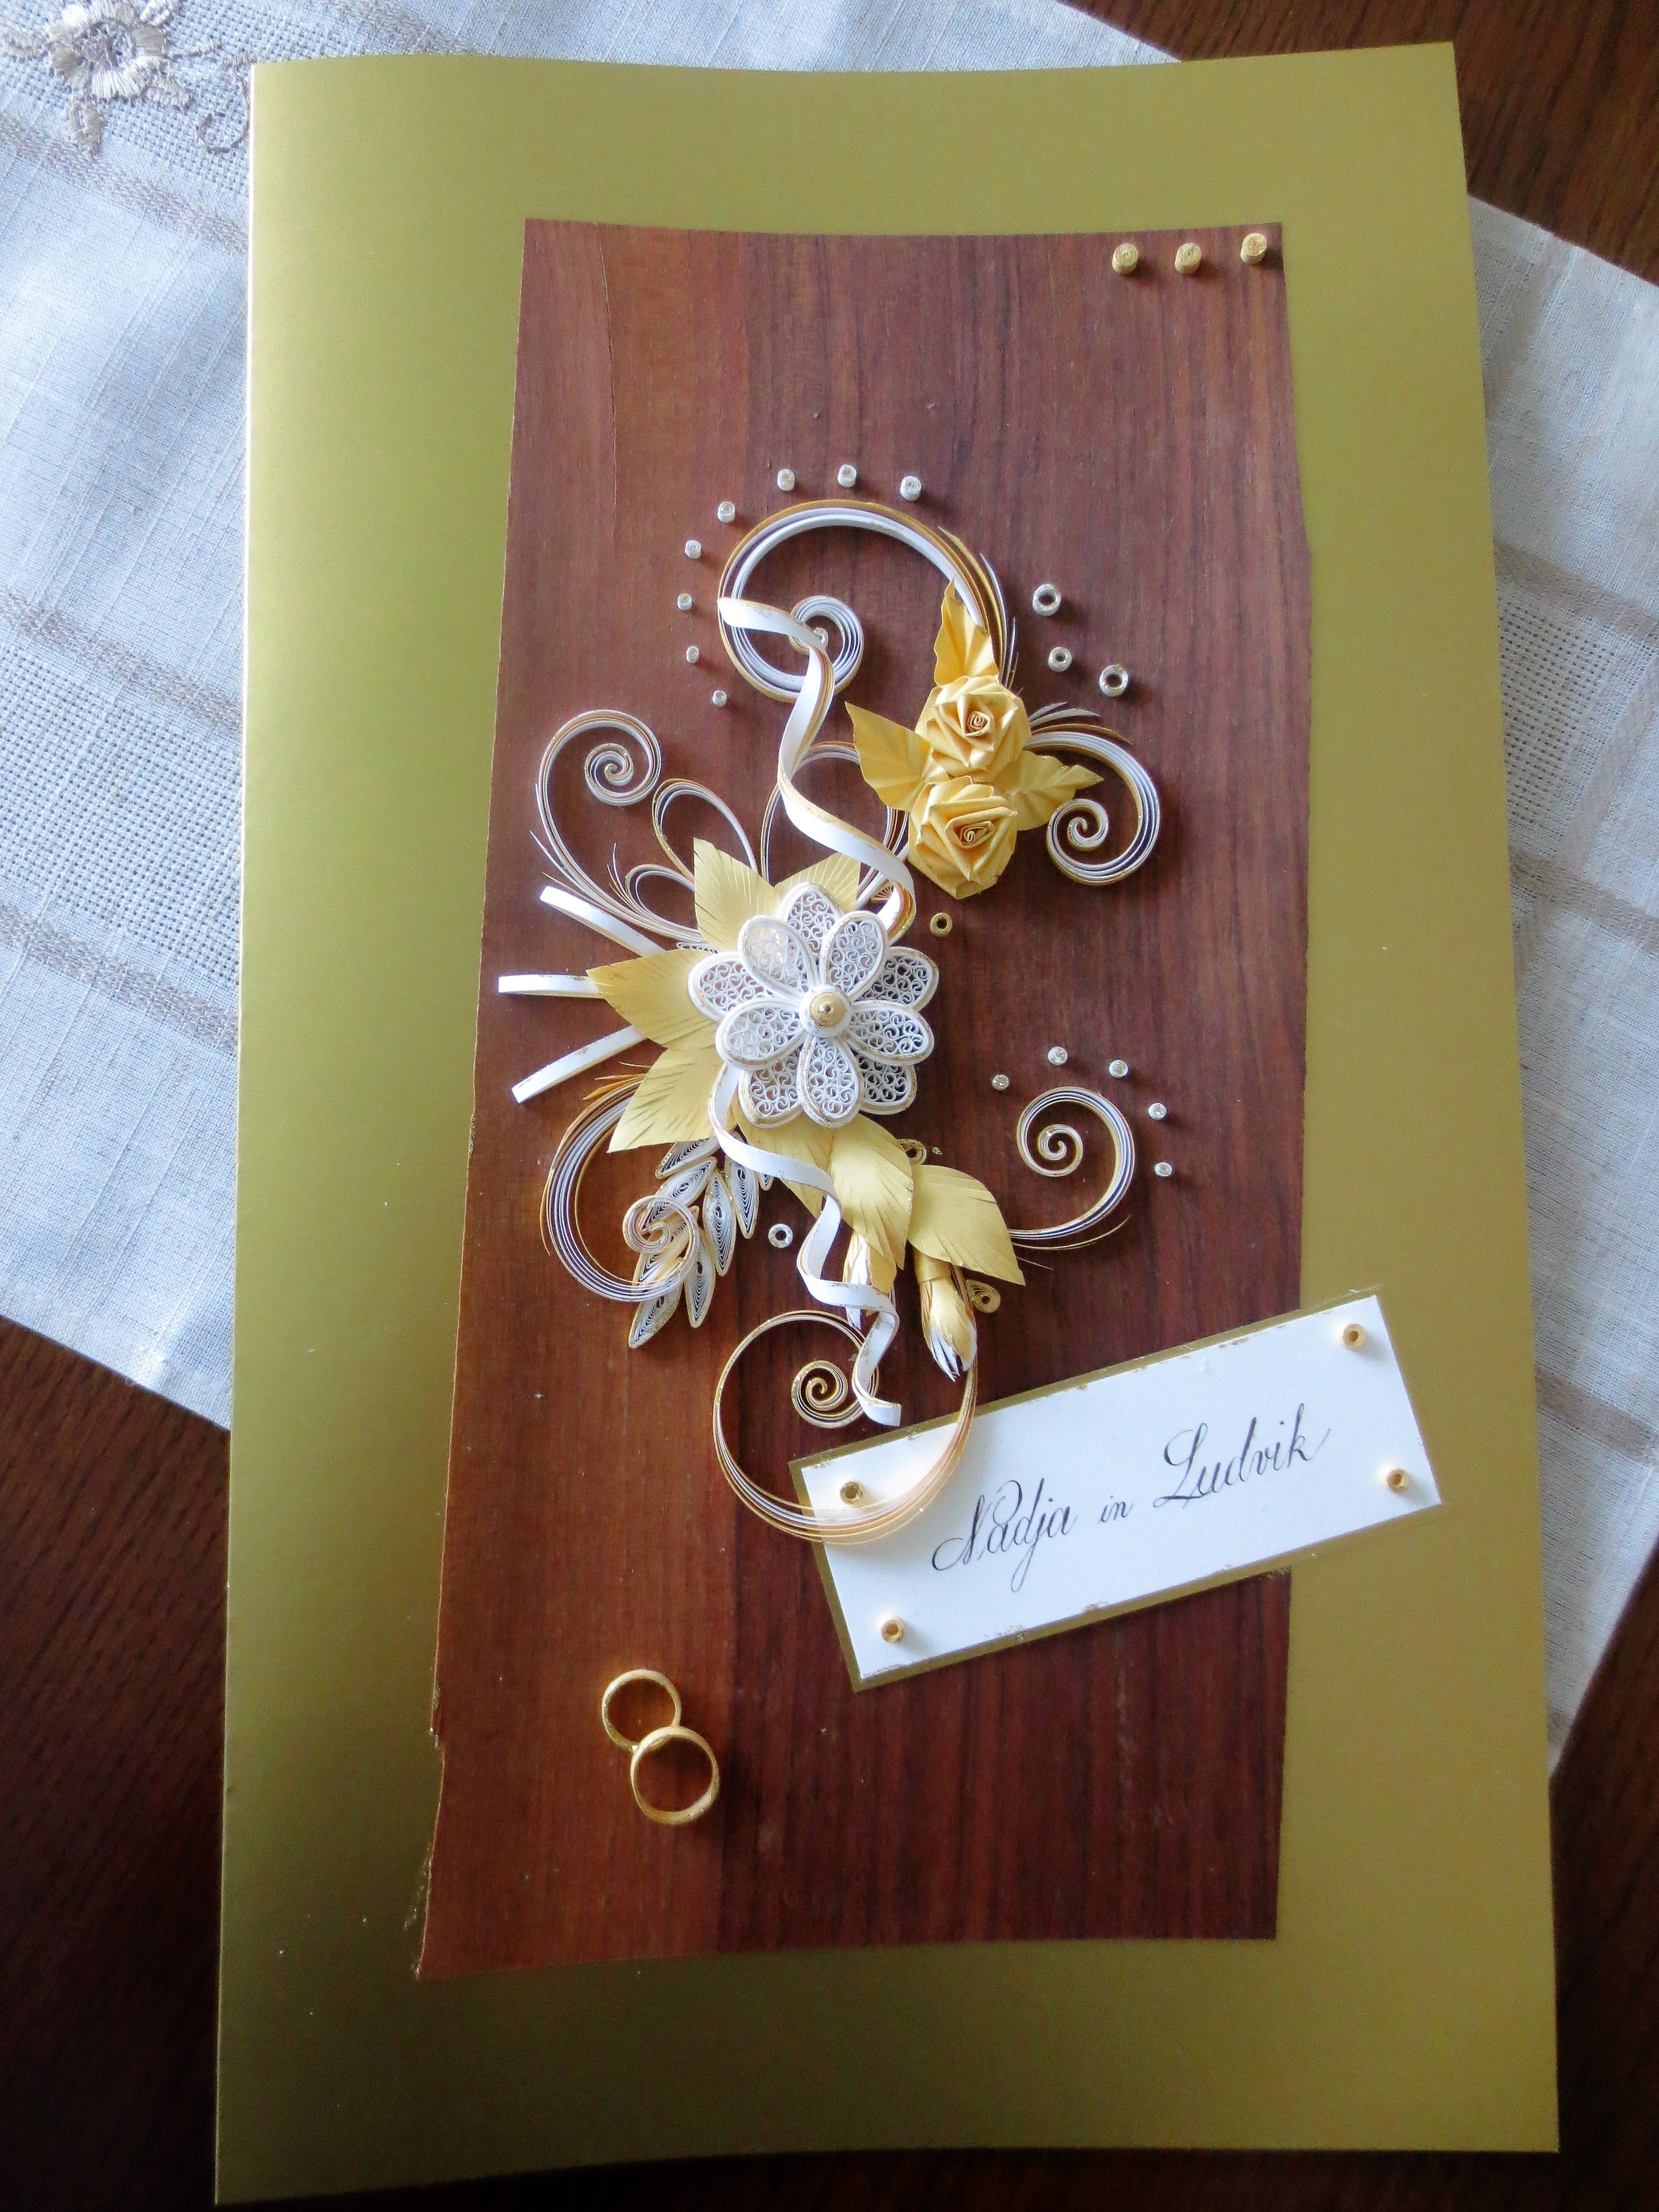 Wallpaper diy wedding envelope box for addresses iphone high quality quilled official document at golden marriage handmade cards and